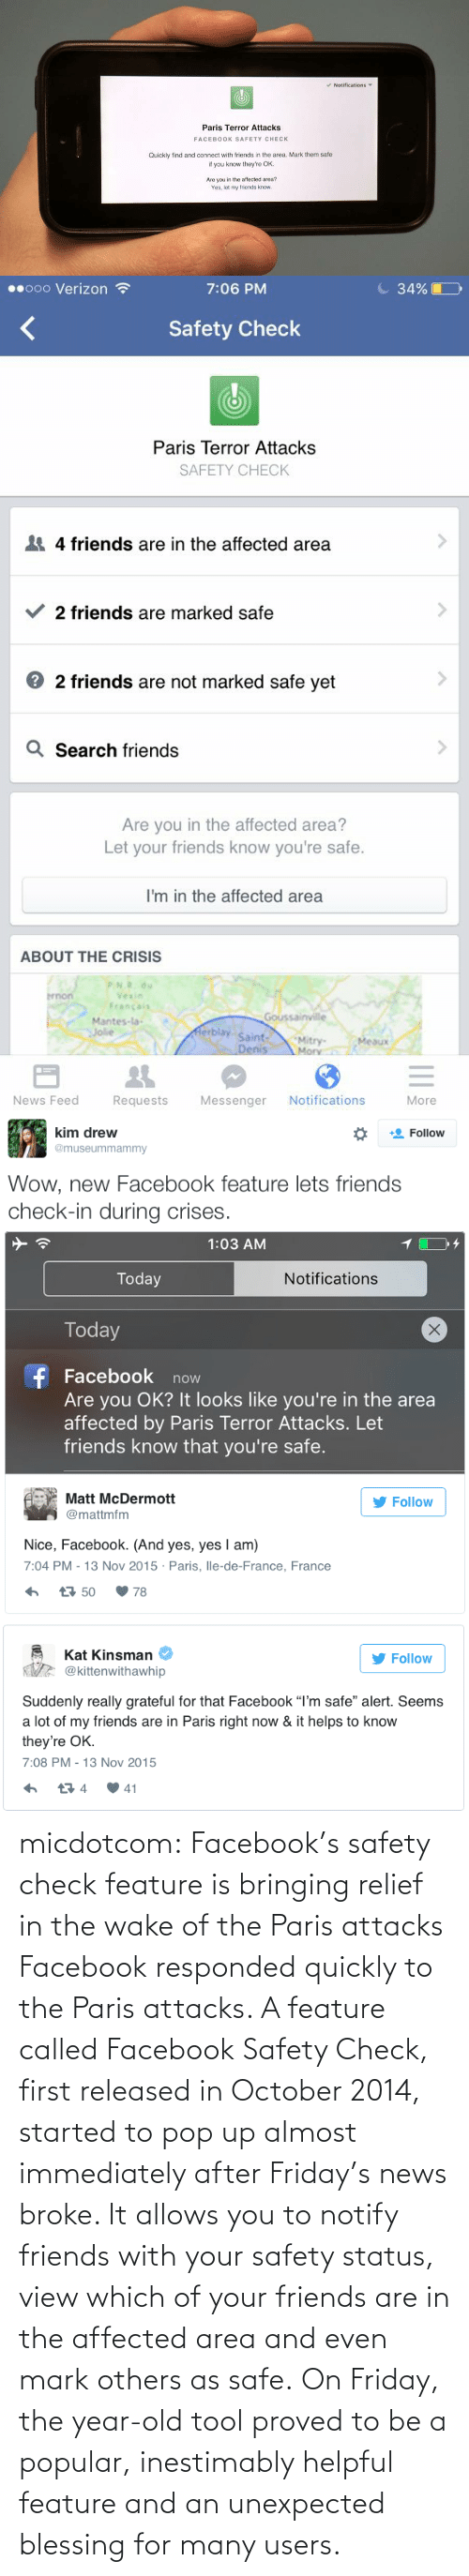 """Marked Safe: v Notifications  Paris Terror Attacks  FACEBOOK SAFETY CHECK  Quickly find and connect with friends in the area. Mark them safe  if you know they're OK.  Are you in the affected area?  Yes, let my friends know.   C 34%    00000 Verizon ?  7:06 PM  Safety Check  Paris Terror Attacks  SAFETY CHECK  4 friends are in the affected area  2 friends are marked safe  2 friends are not marked safe yet  Q Search friends  Are you in the affected area?  Let your friends know you're safe.  I'm in the affected area  ABOUT THE CRISIS  P.N.R. du  brnon  Vexin  Francais  Goussainville  Mantes-la-  Jolie  Merblay  Saint-  Denis  Mitry-  Mory  Meaux  Notifications  News Feed  Requests  Messenger  More   kim drew  Follow  @museummammy  Wow, new Facebook feature lets friends  check-in during crises.   1:03 AM  Today  Notifications  Today  f Facebook now  Are you OK? It looks like you're in the area  affected by Paris Terror Attacks. Let  friends know that you're safe.  Matt McDermott  Follow  @mattmfm  Nice, Facebook. (And yes, yes I am)  7:04 PM - 13 Nov 2015 · Paris, lle-de-France, France  t7 50  78   Kat Kinsman  Follow  @kittenwithawhip  Suddenly really grateful for that Facebook """"I'm safe"""" alert. Seems  a lot of my friends are in Paris right now & it helps to know  they're OK.  7:08 PM - 13 Nov 2015  17 4  41 micdotcom:  Facebook's safety check feature is bringing relief in the wake of the Paris attacks Facebook responded quickly to the Paris attacks. A feature called Facebook Safety Check, first released in October 2014, started to pop up almost immediately after Friday's news broke. It allows you to notify friends with your safety status, view which of your friends are in the affected area and even mark others as safe.On Friday, the year-old tool proved to be a popular, inestimably helpful feature and an unexpected blessing for many users."""